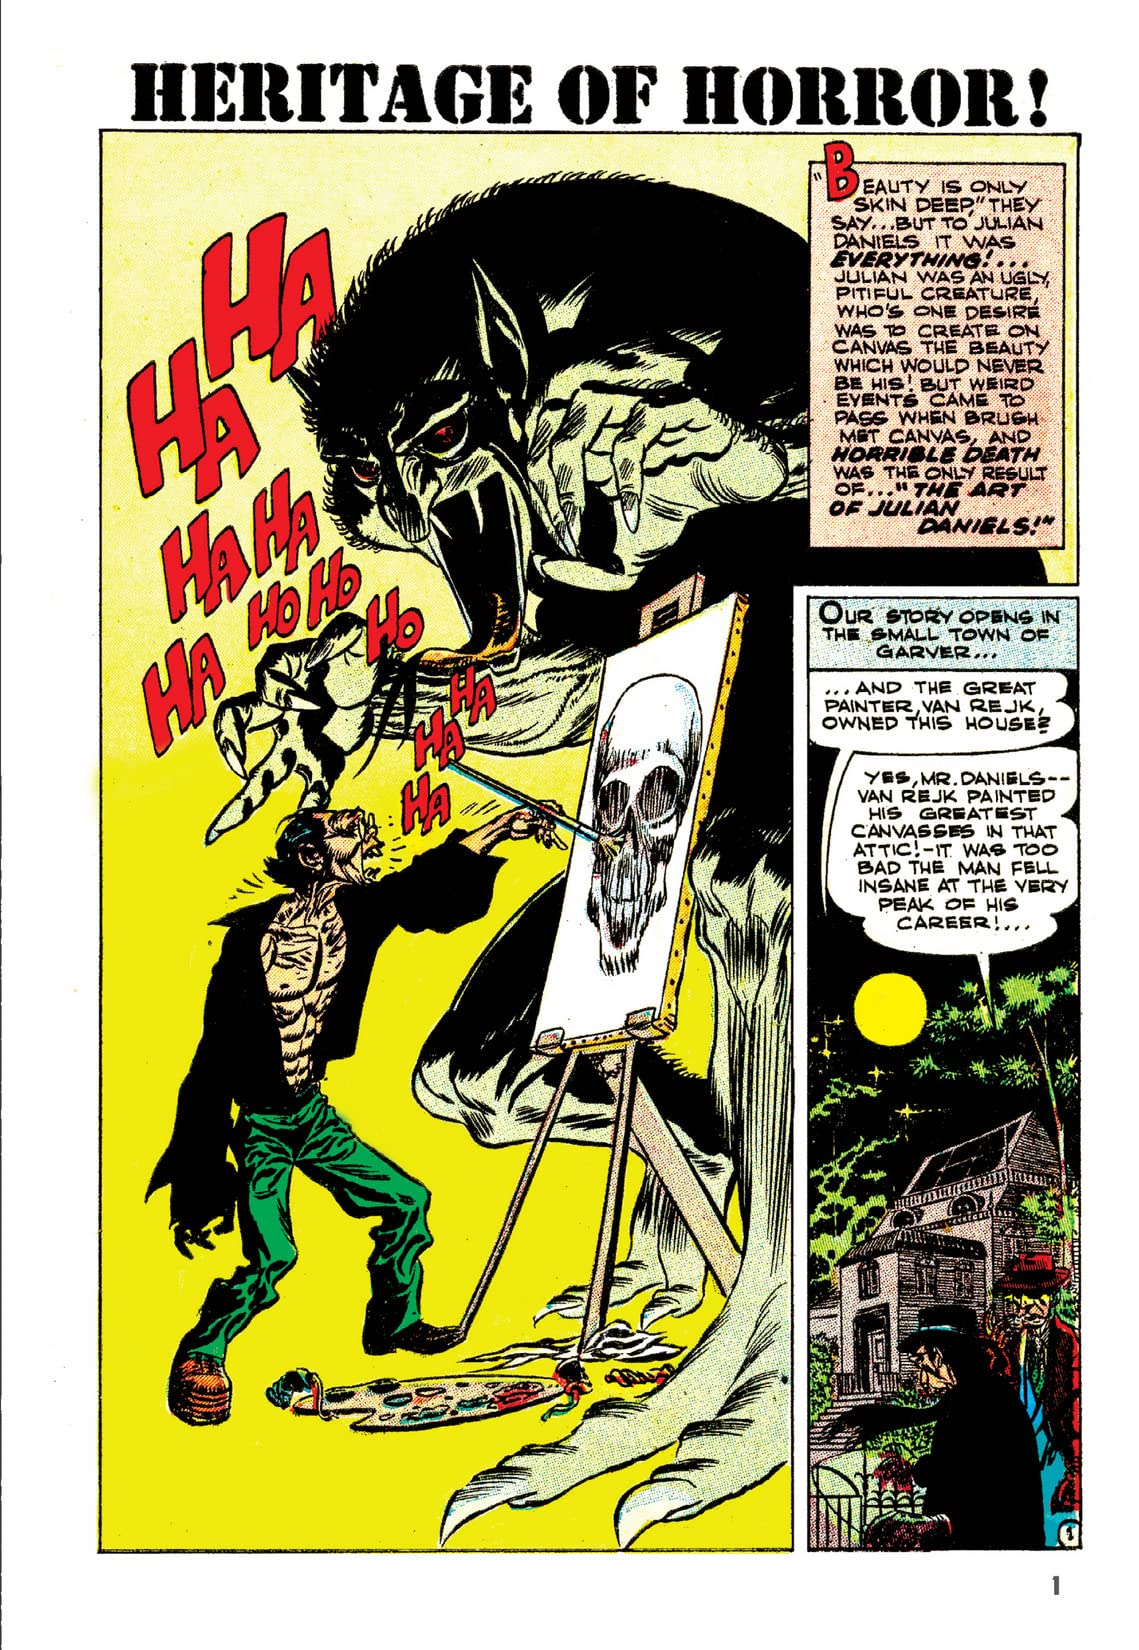 Weird Horrors & Daring Adventures: The Joe Kubert Archives Vol. 1